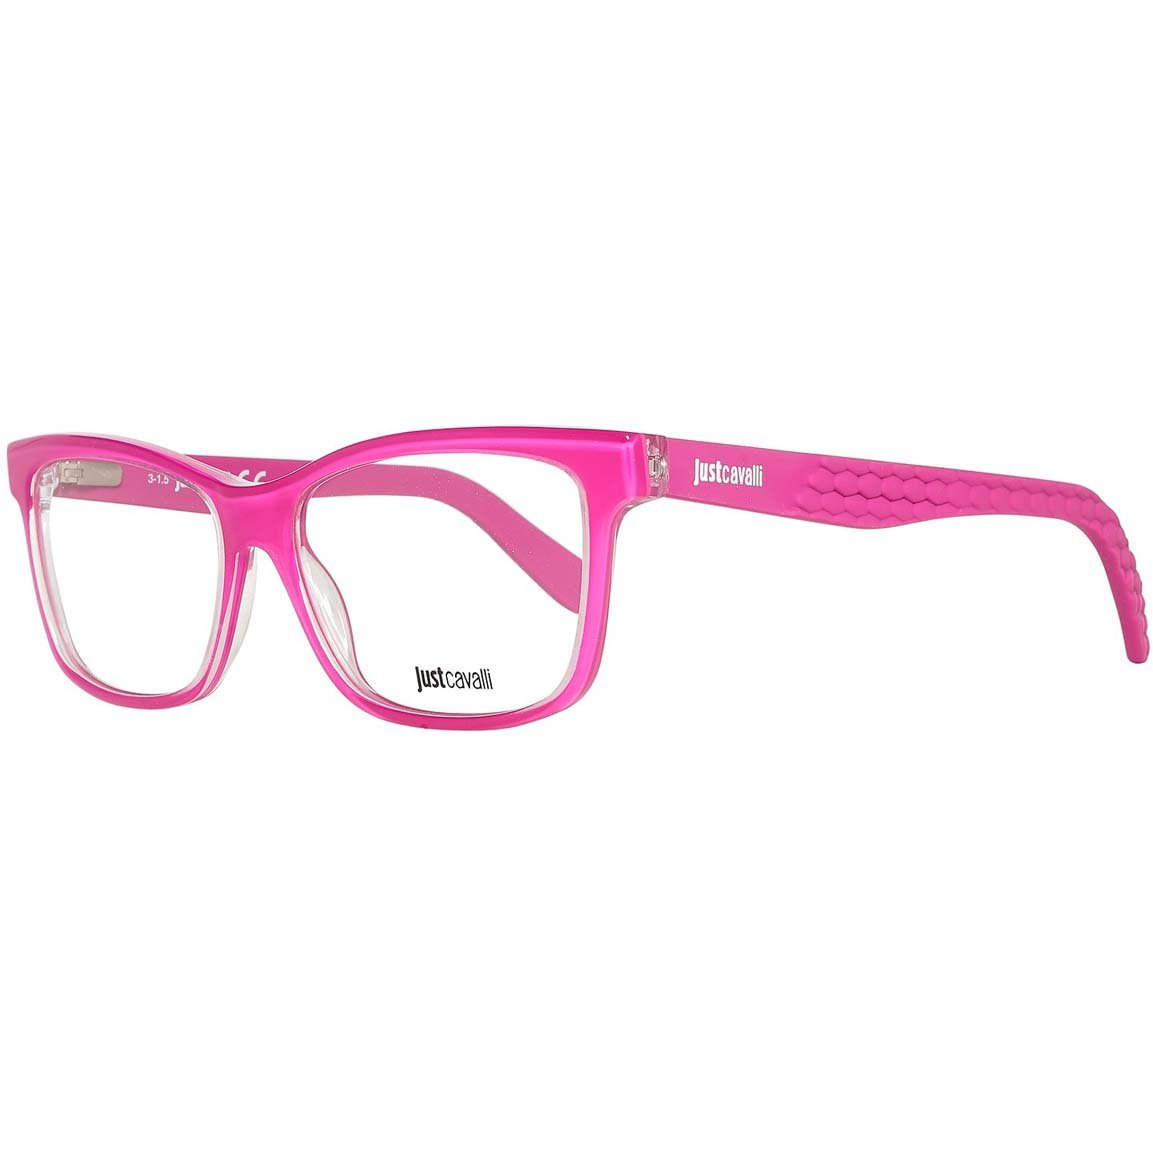 Just Cavalli JC0642 C53 075 (shiny fuxia / ) Brillengestelle JC0642_53075